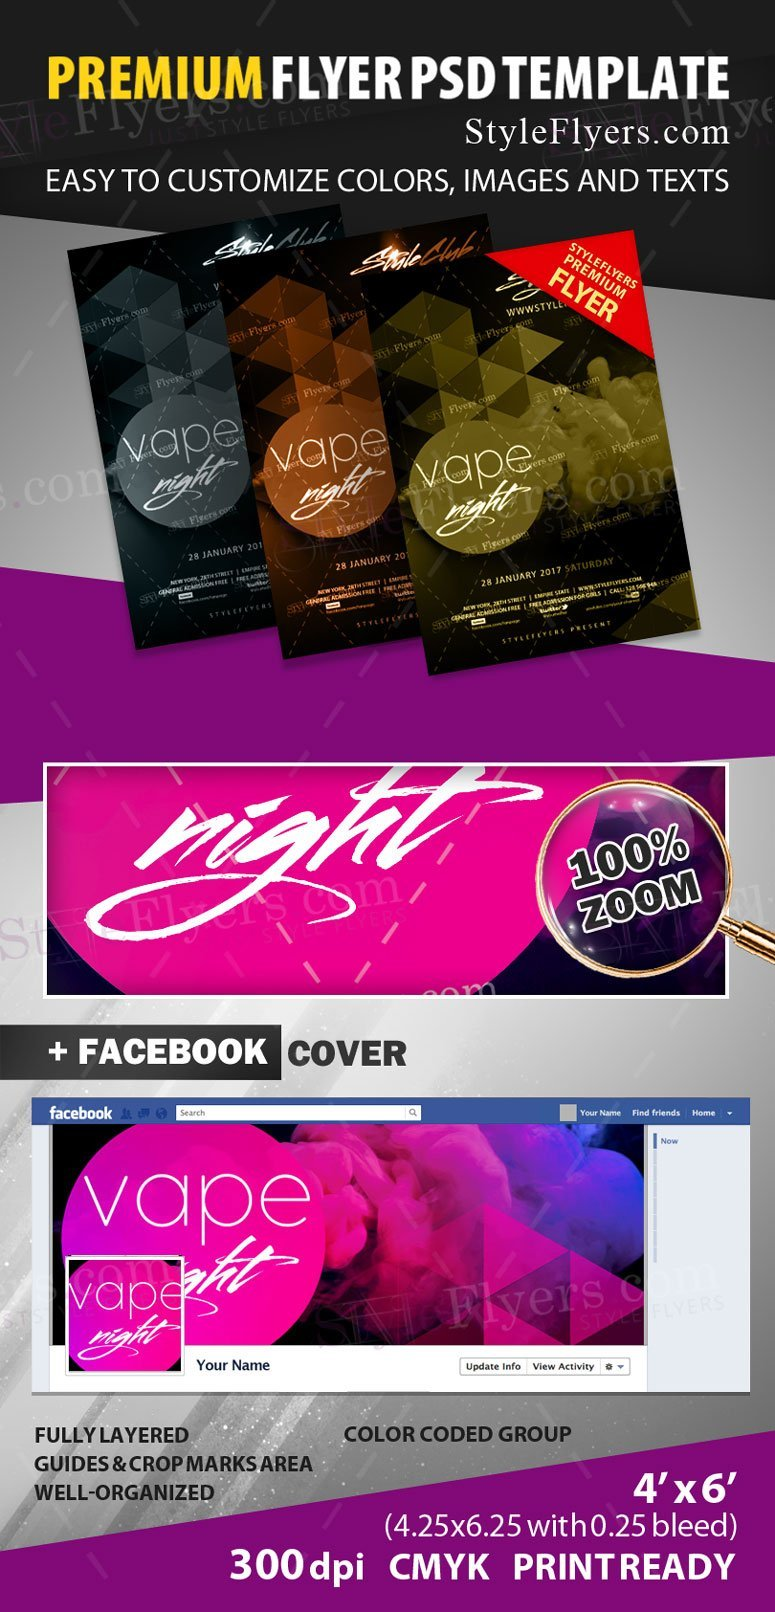 vape-night-preview_premium